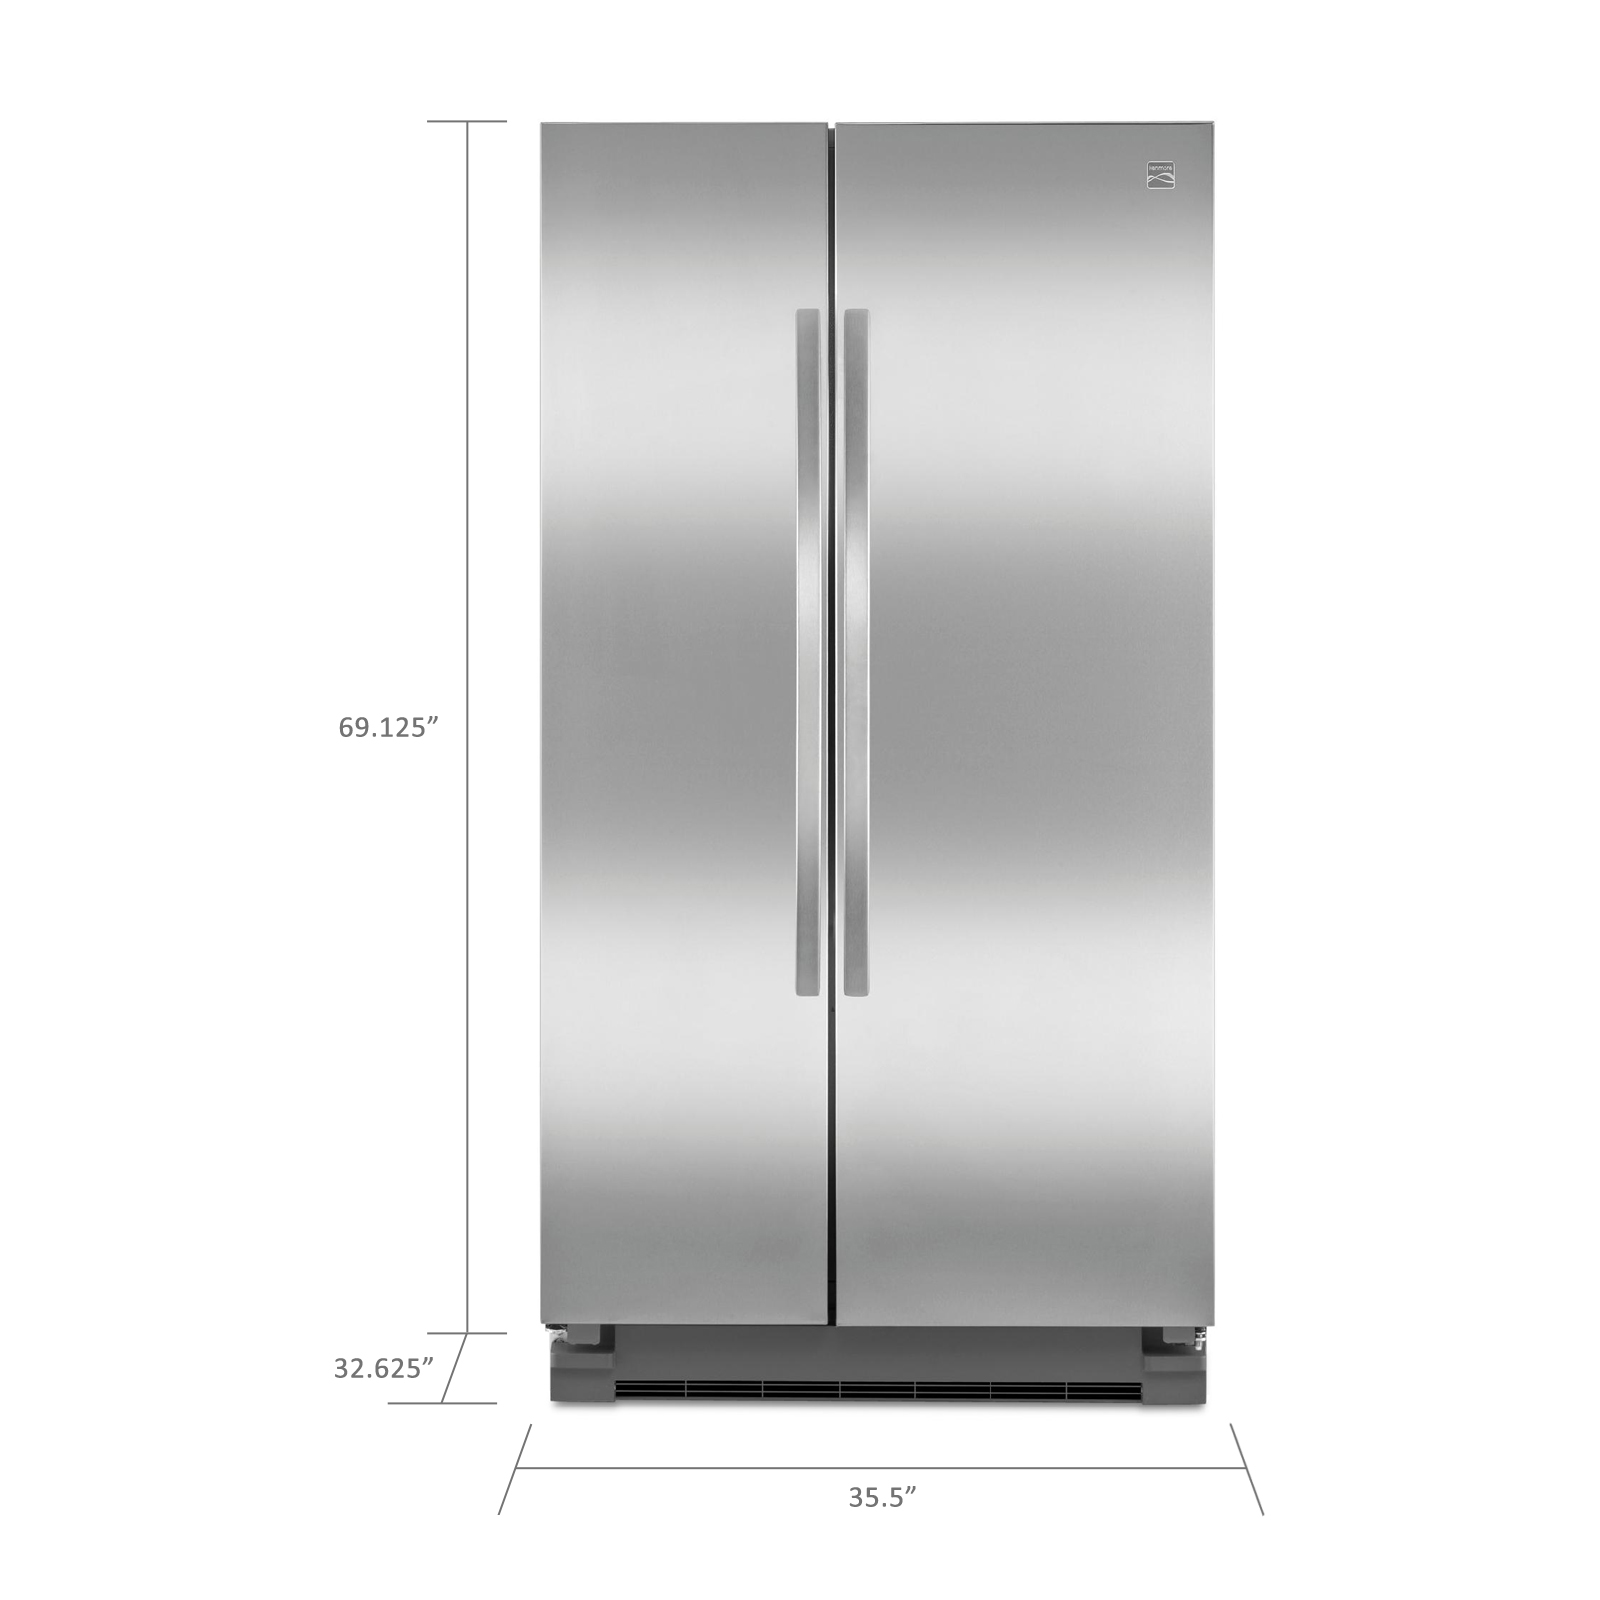 Kenmore 25 cu. ft. Side-by-Side Refrigerator - Stainless Steel